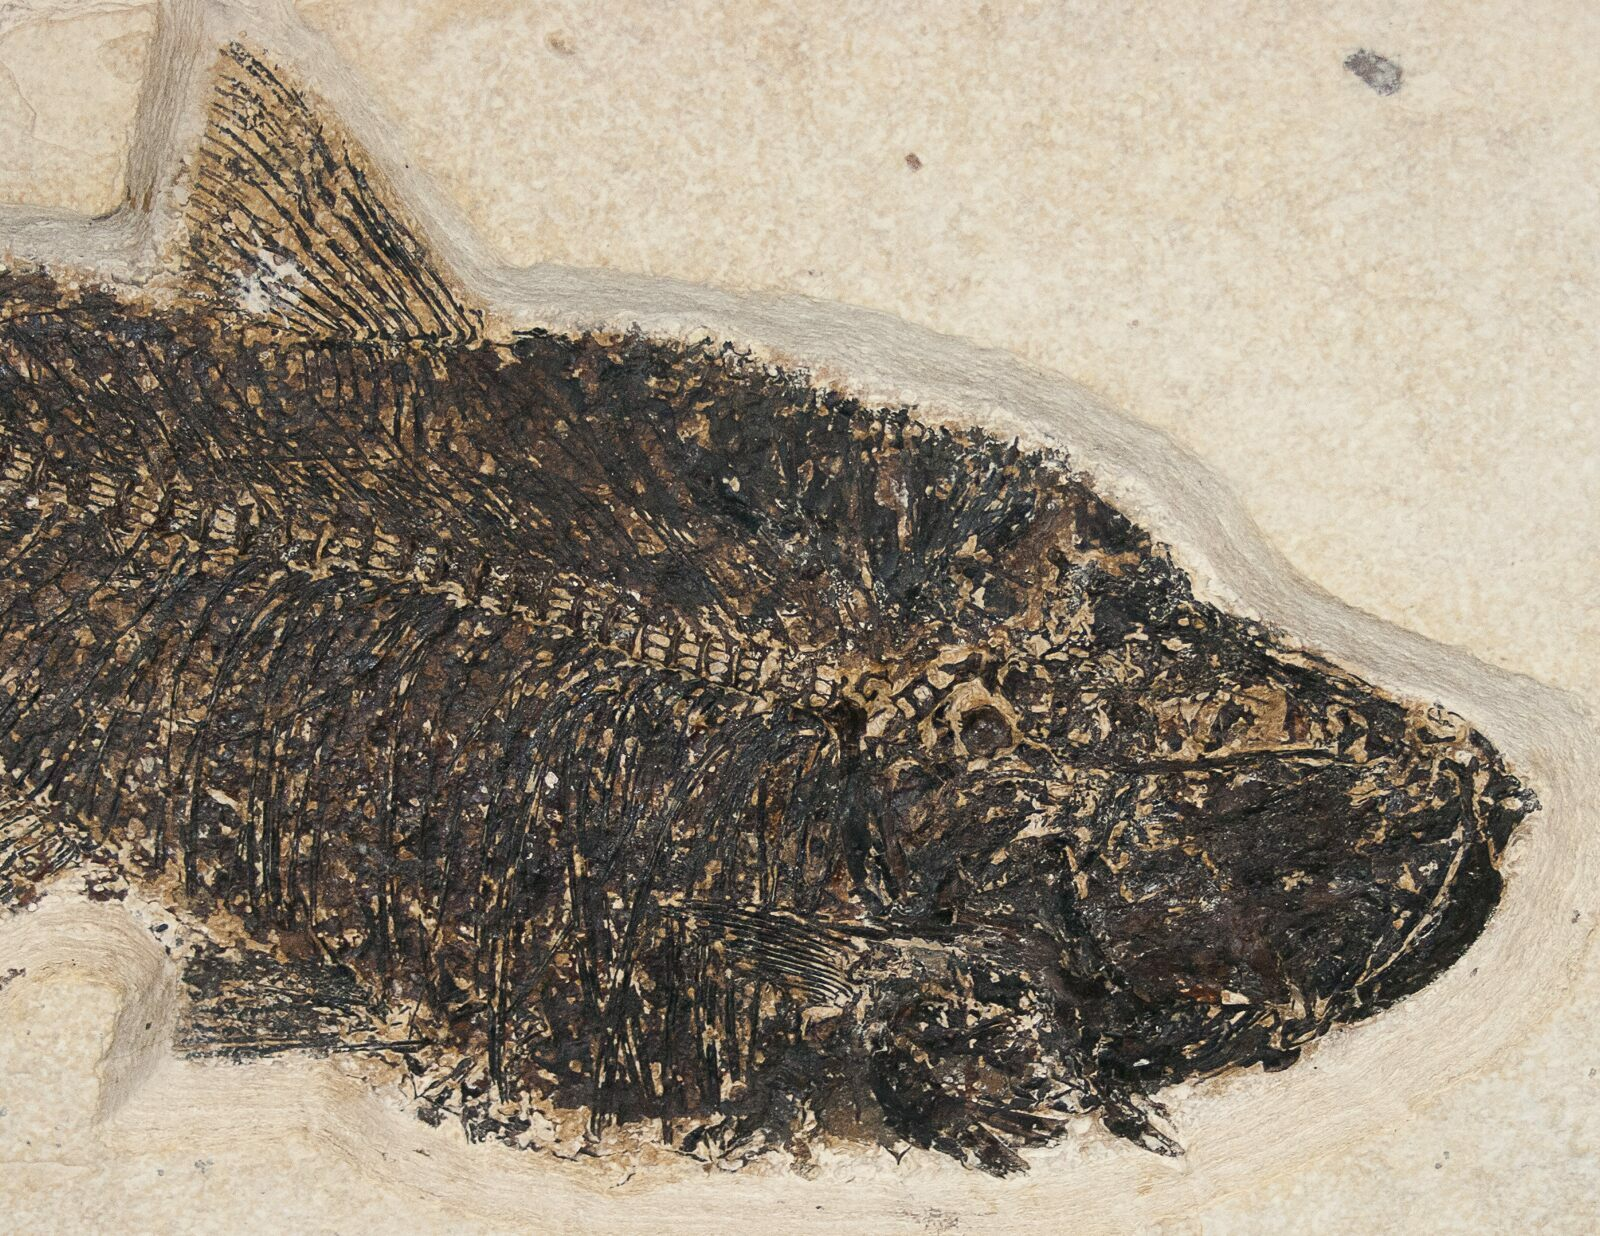 16 5 8 5 diplomystus fish fossil wyoming free for Fish fossils for sale